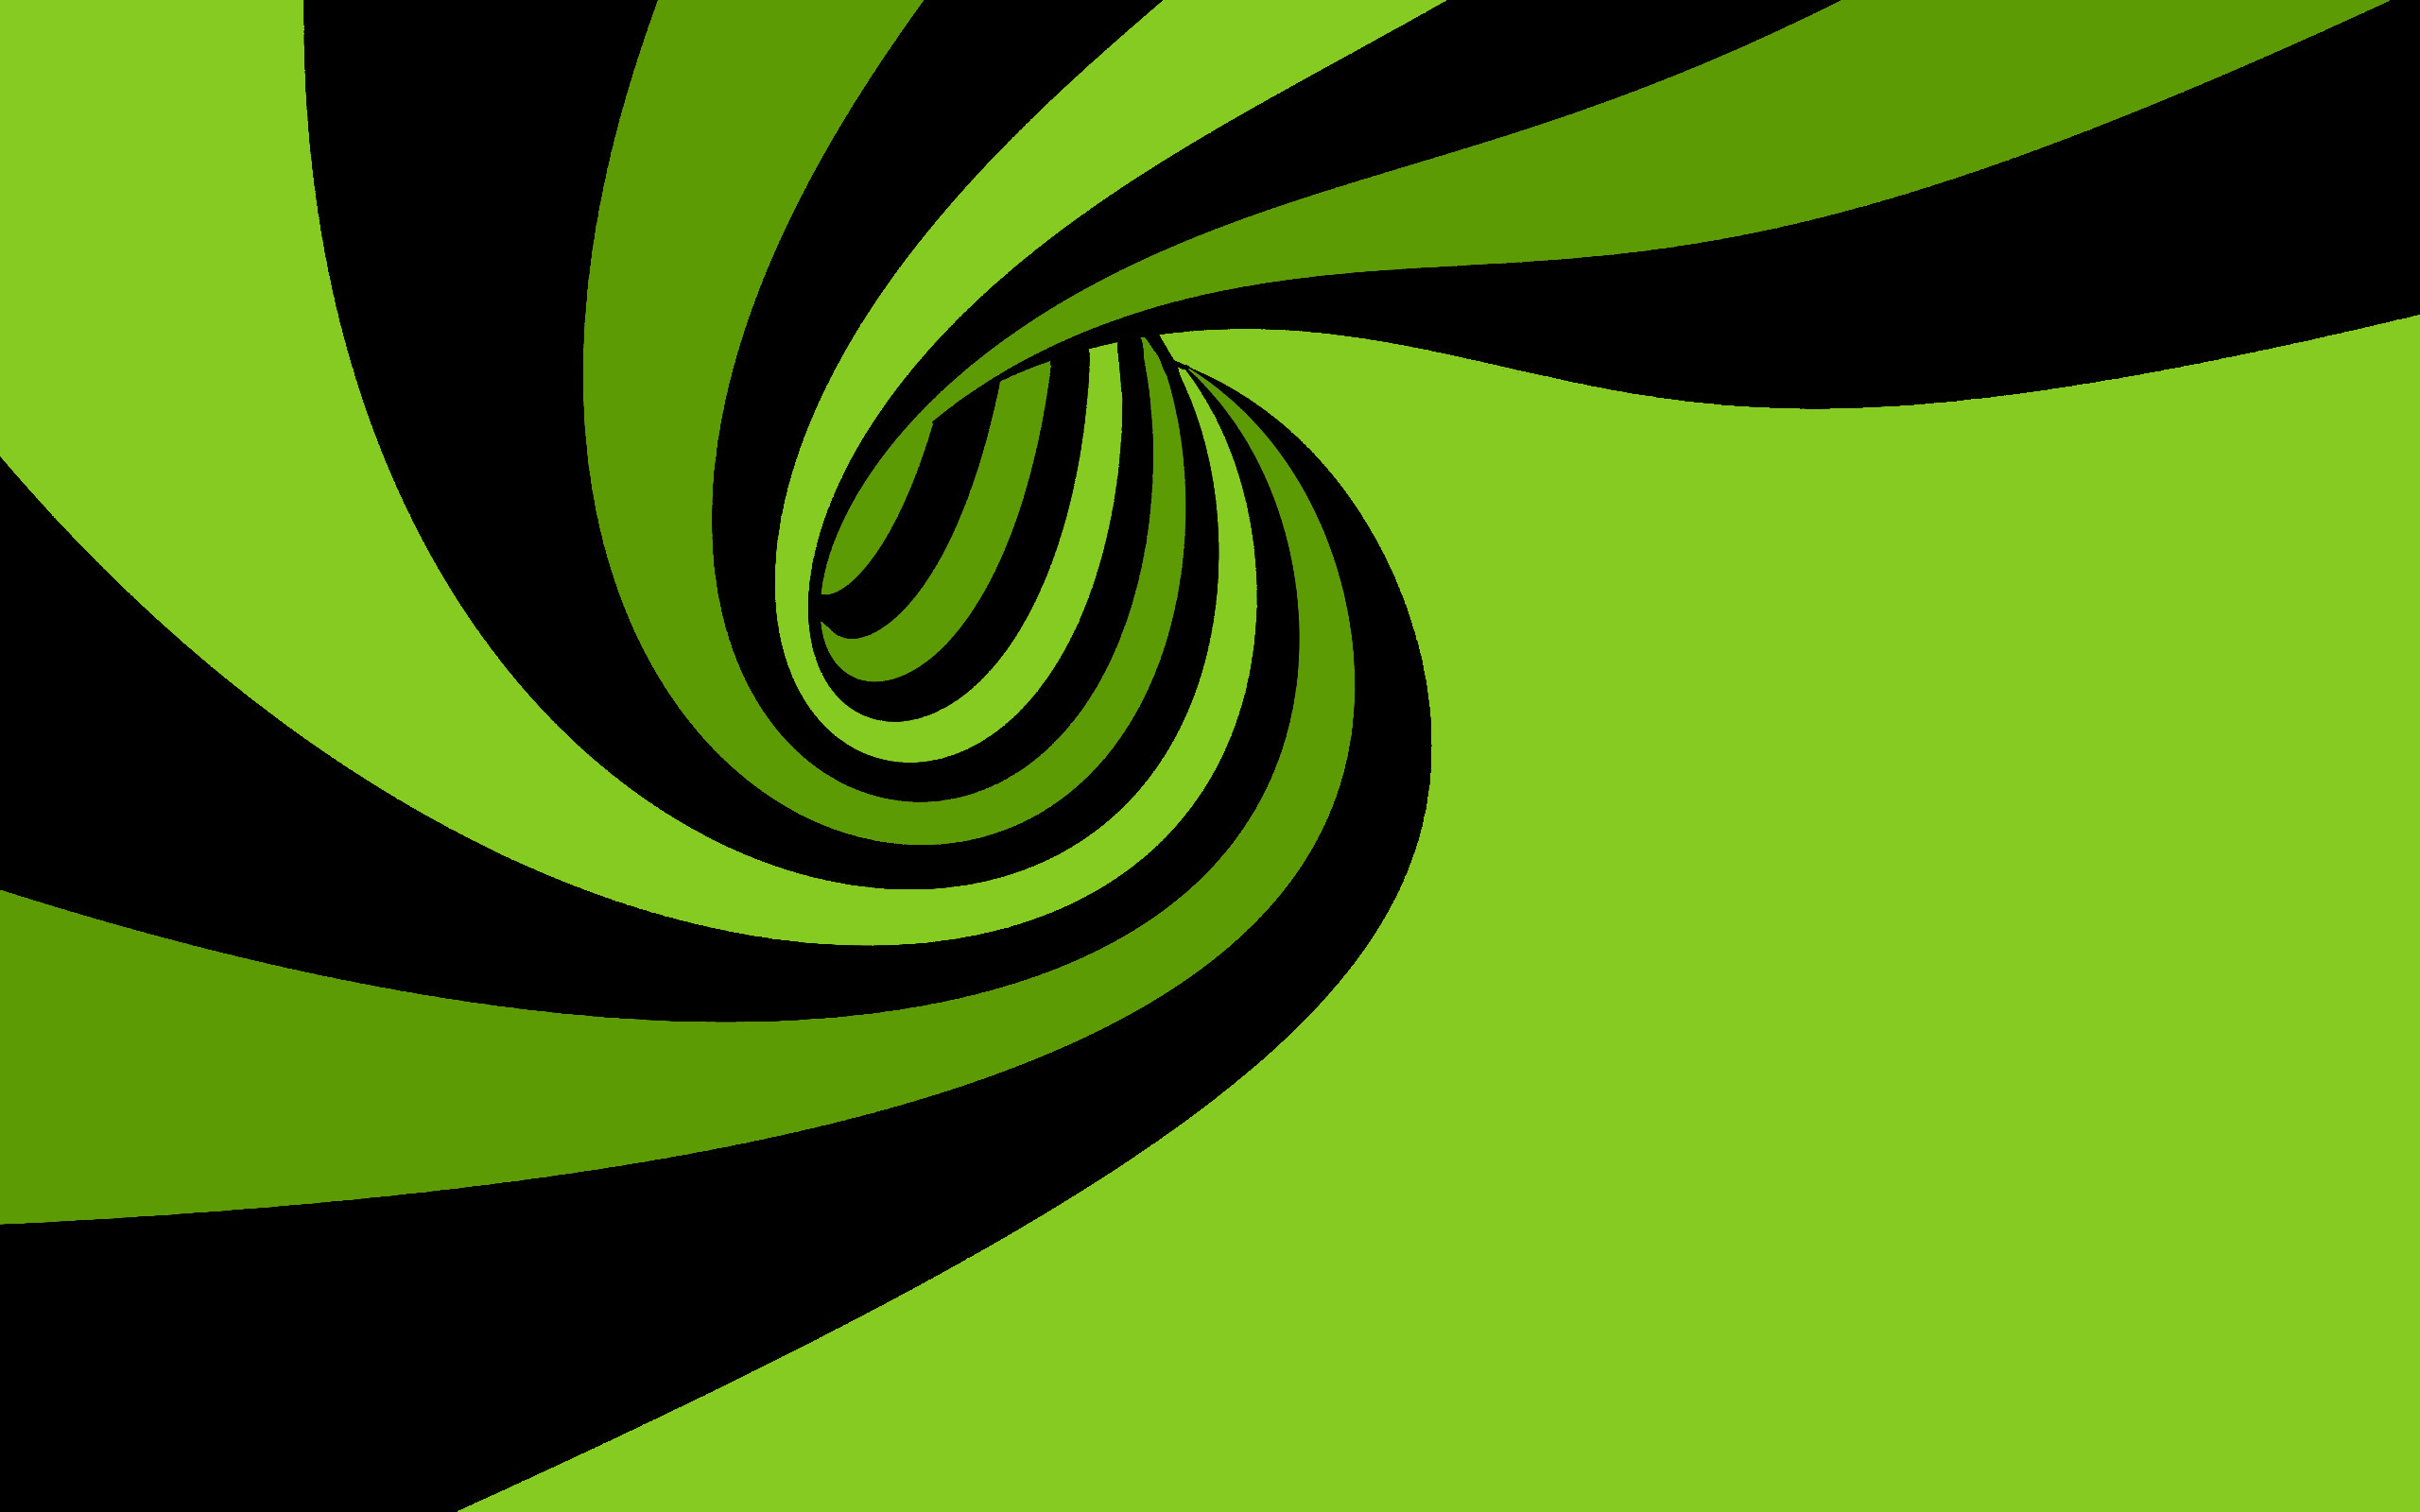 Black And Green Wallpapers | Top 817 Black And Green Wallpapers